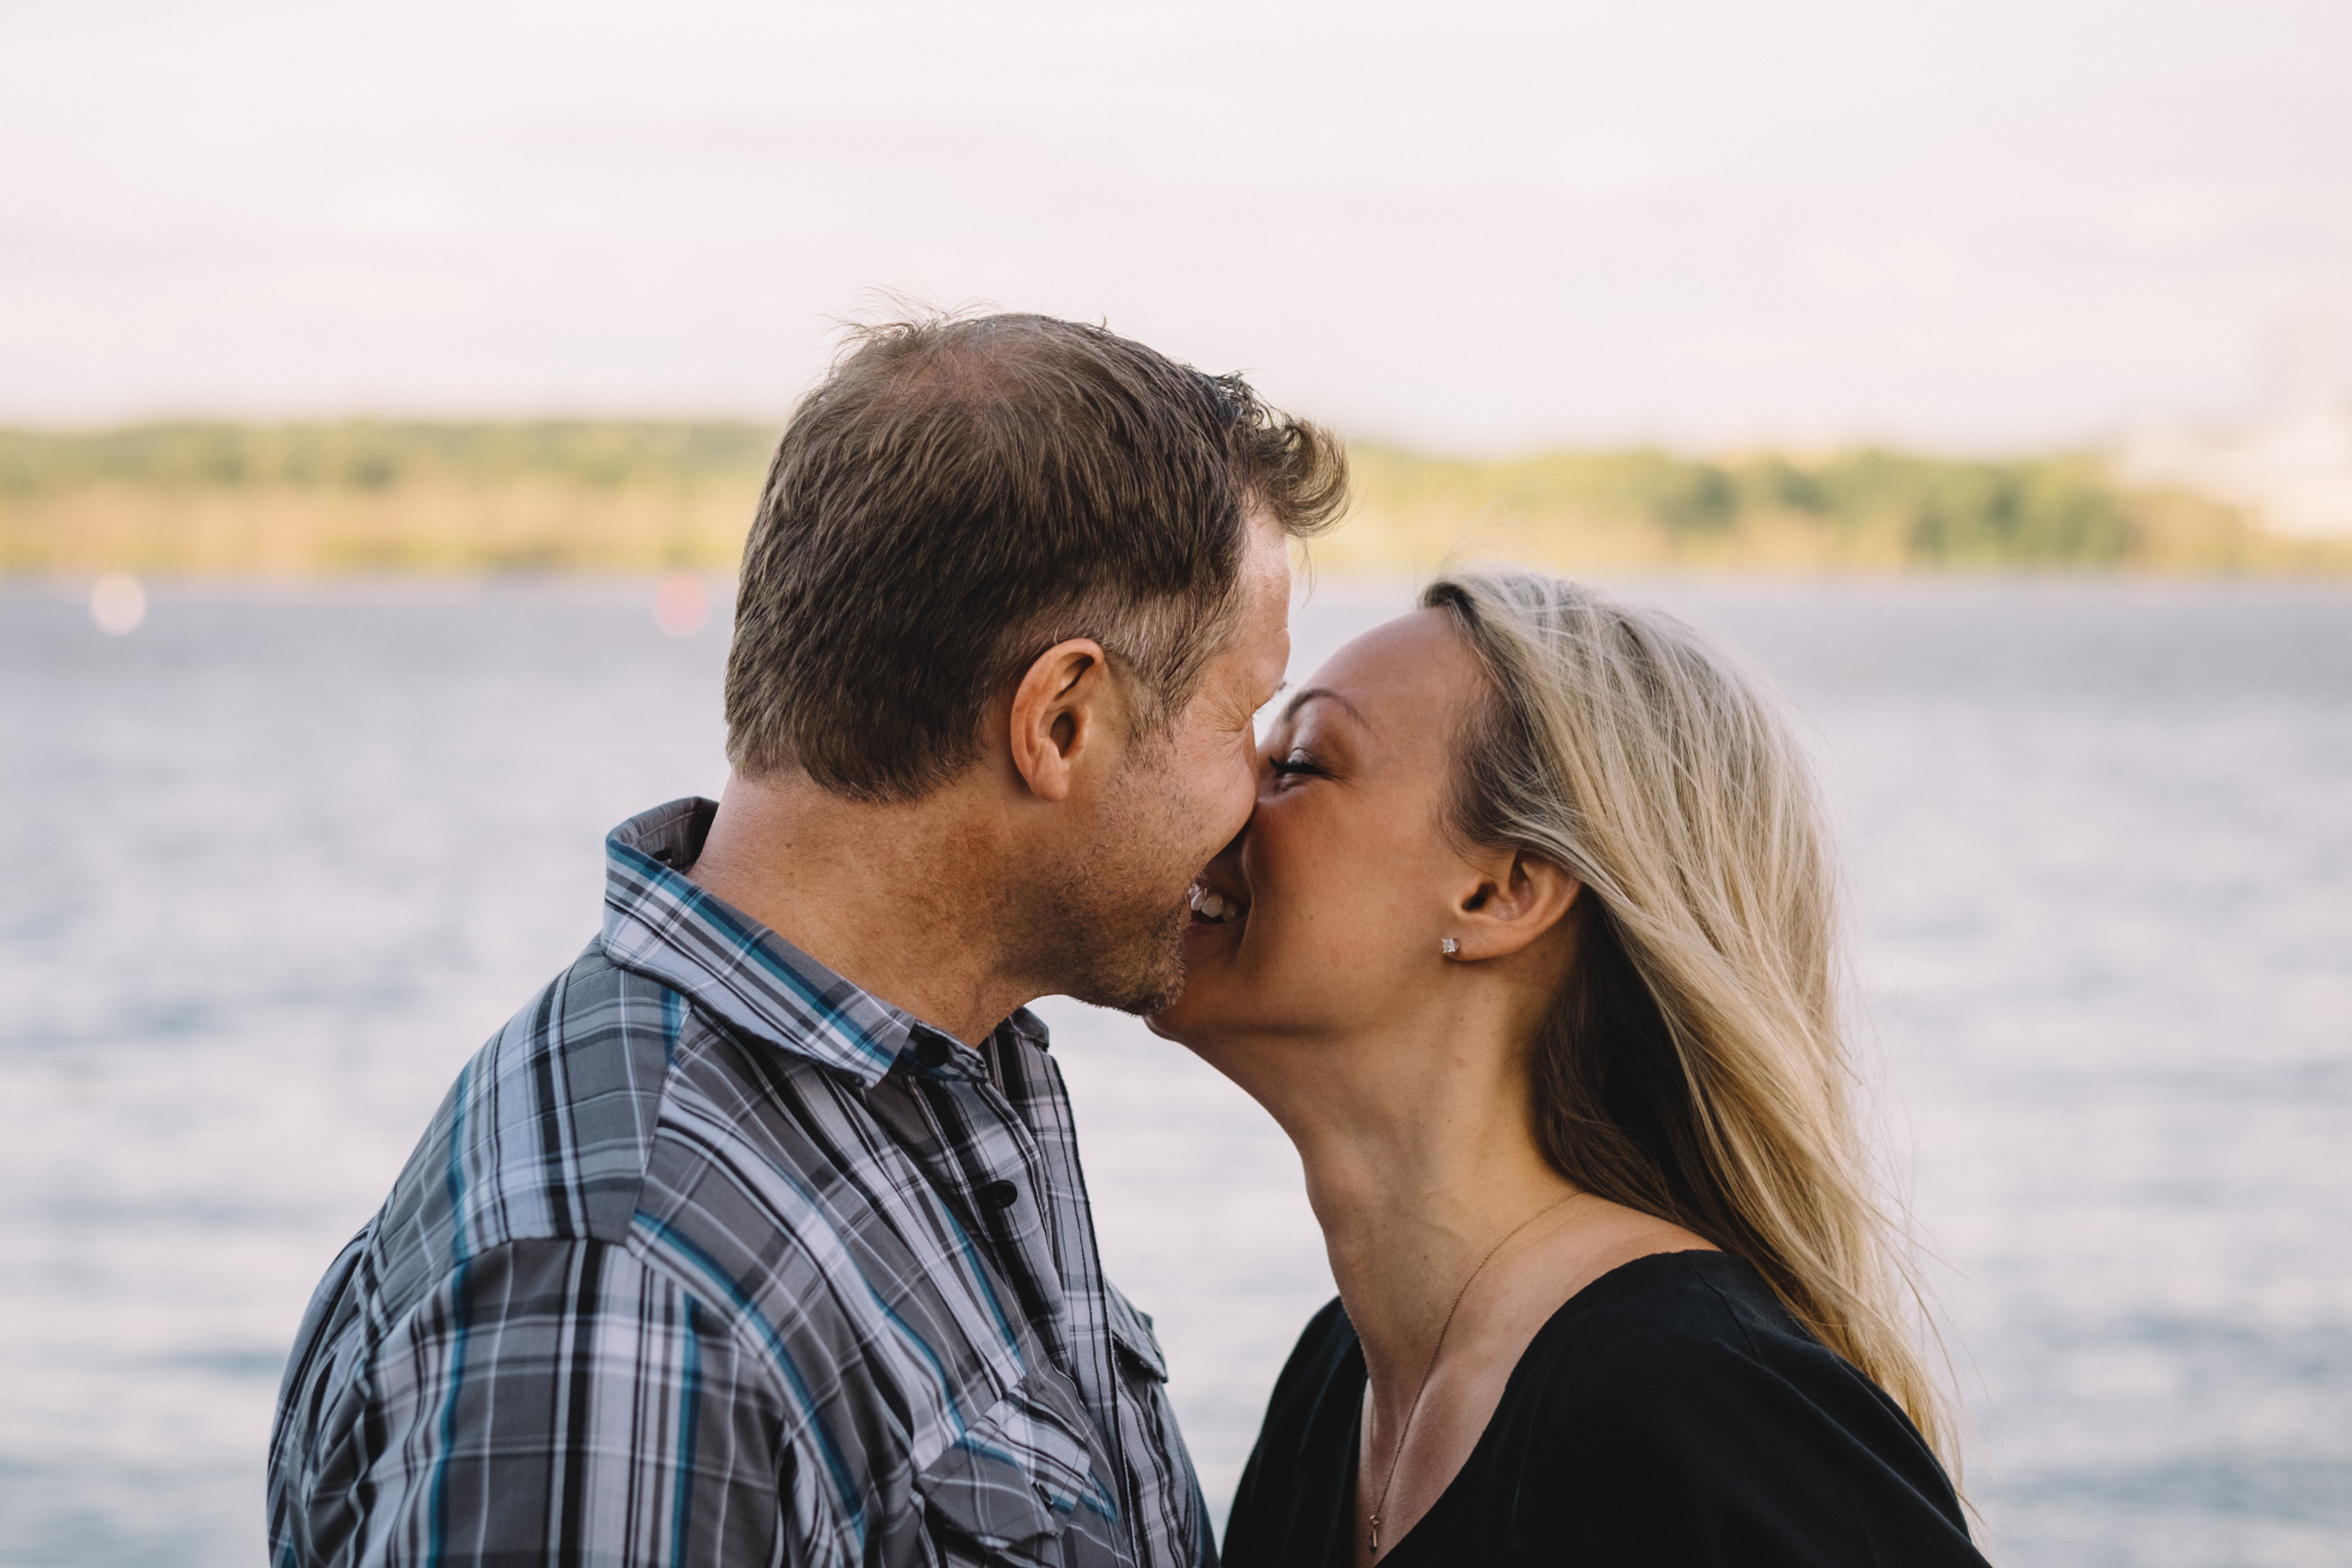 old town alexandria engagement session margaret and cody-3.jpg